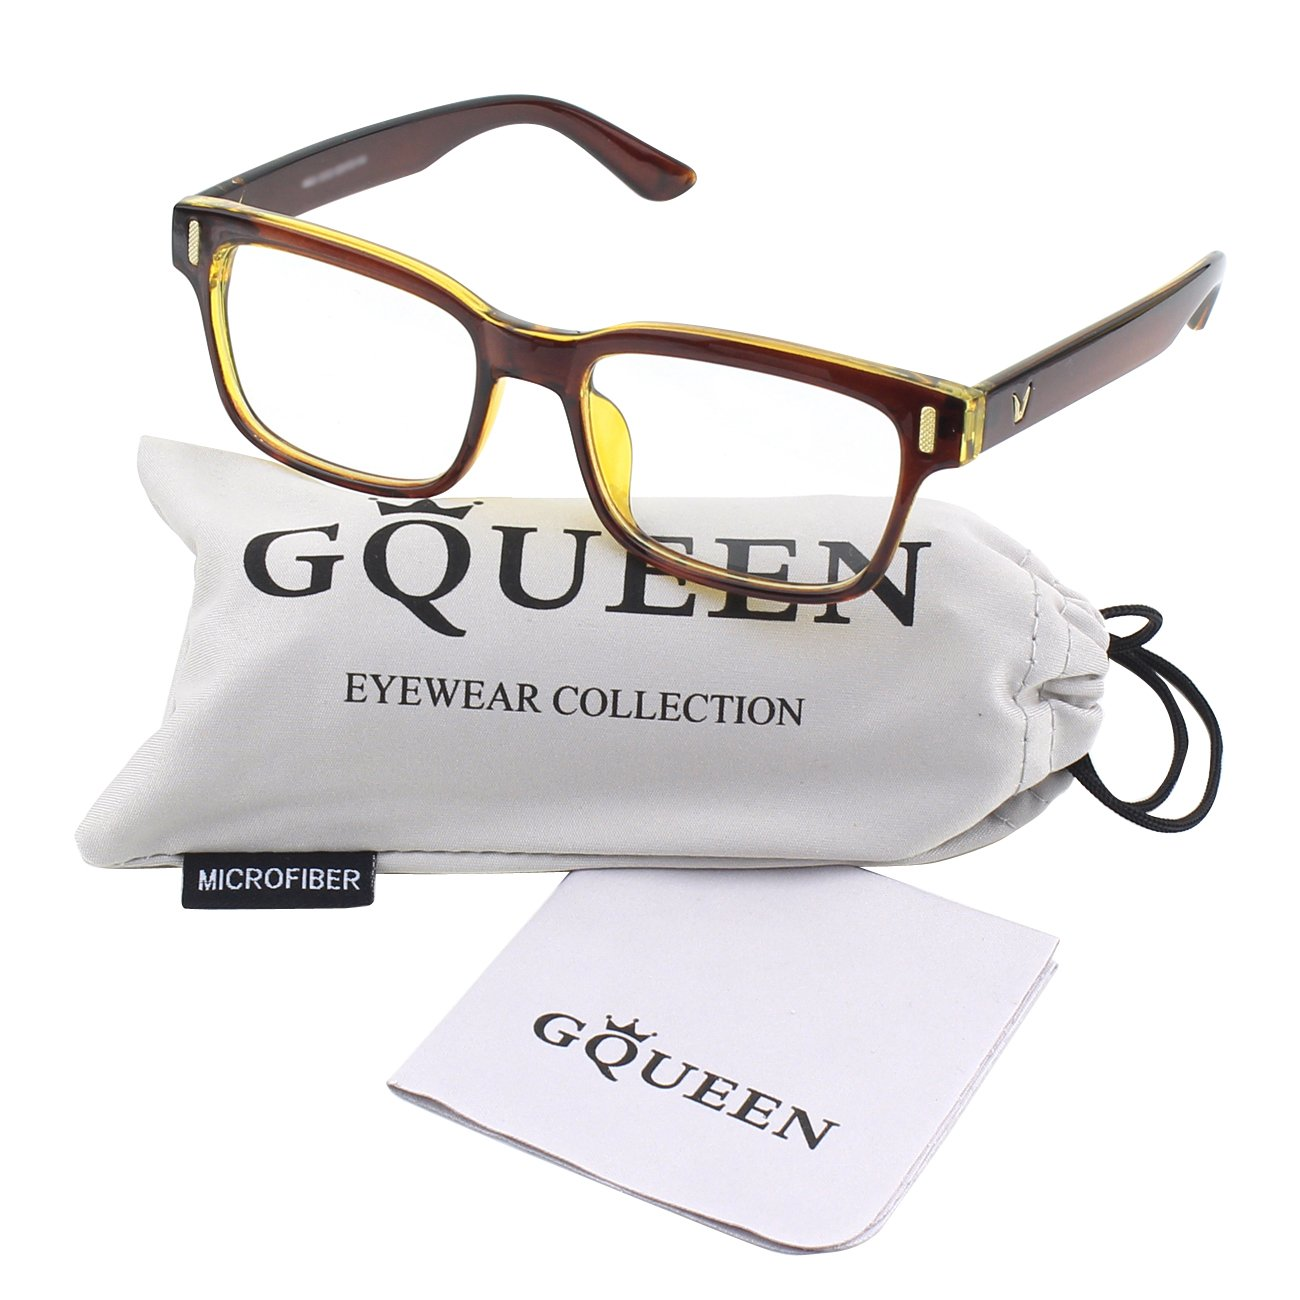 GQUEEN 201584 Modern Fashion Rectangular Bold Thick Frame Clear Lens Eye Glasses, Shiny Black FBAGQ84c-04